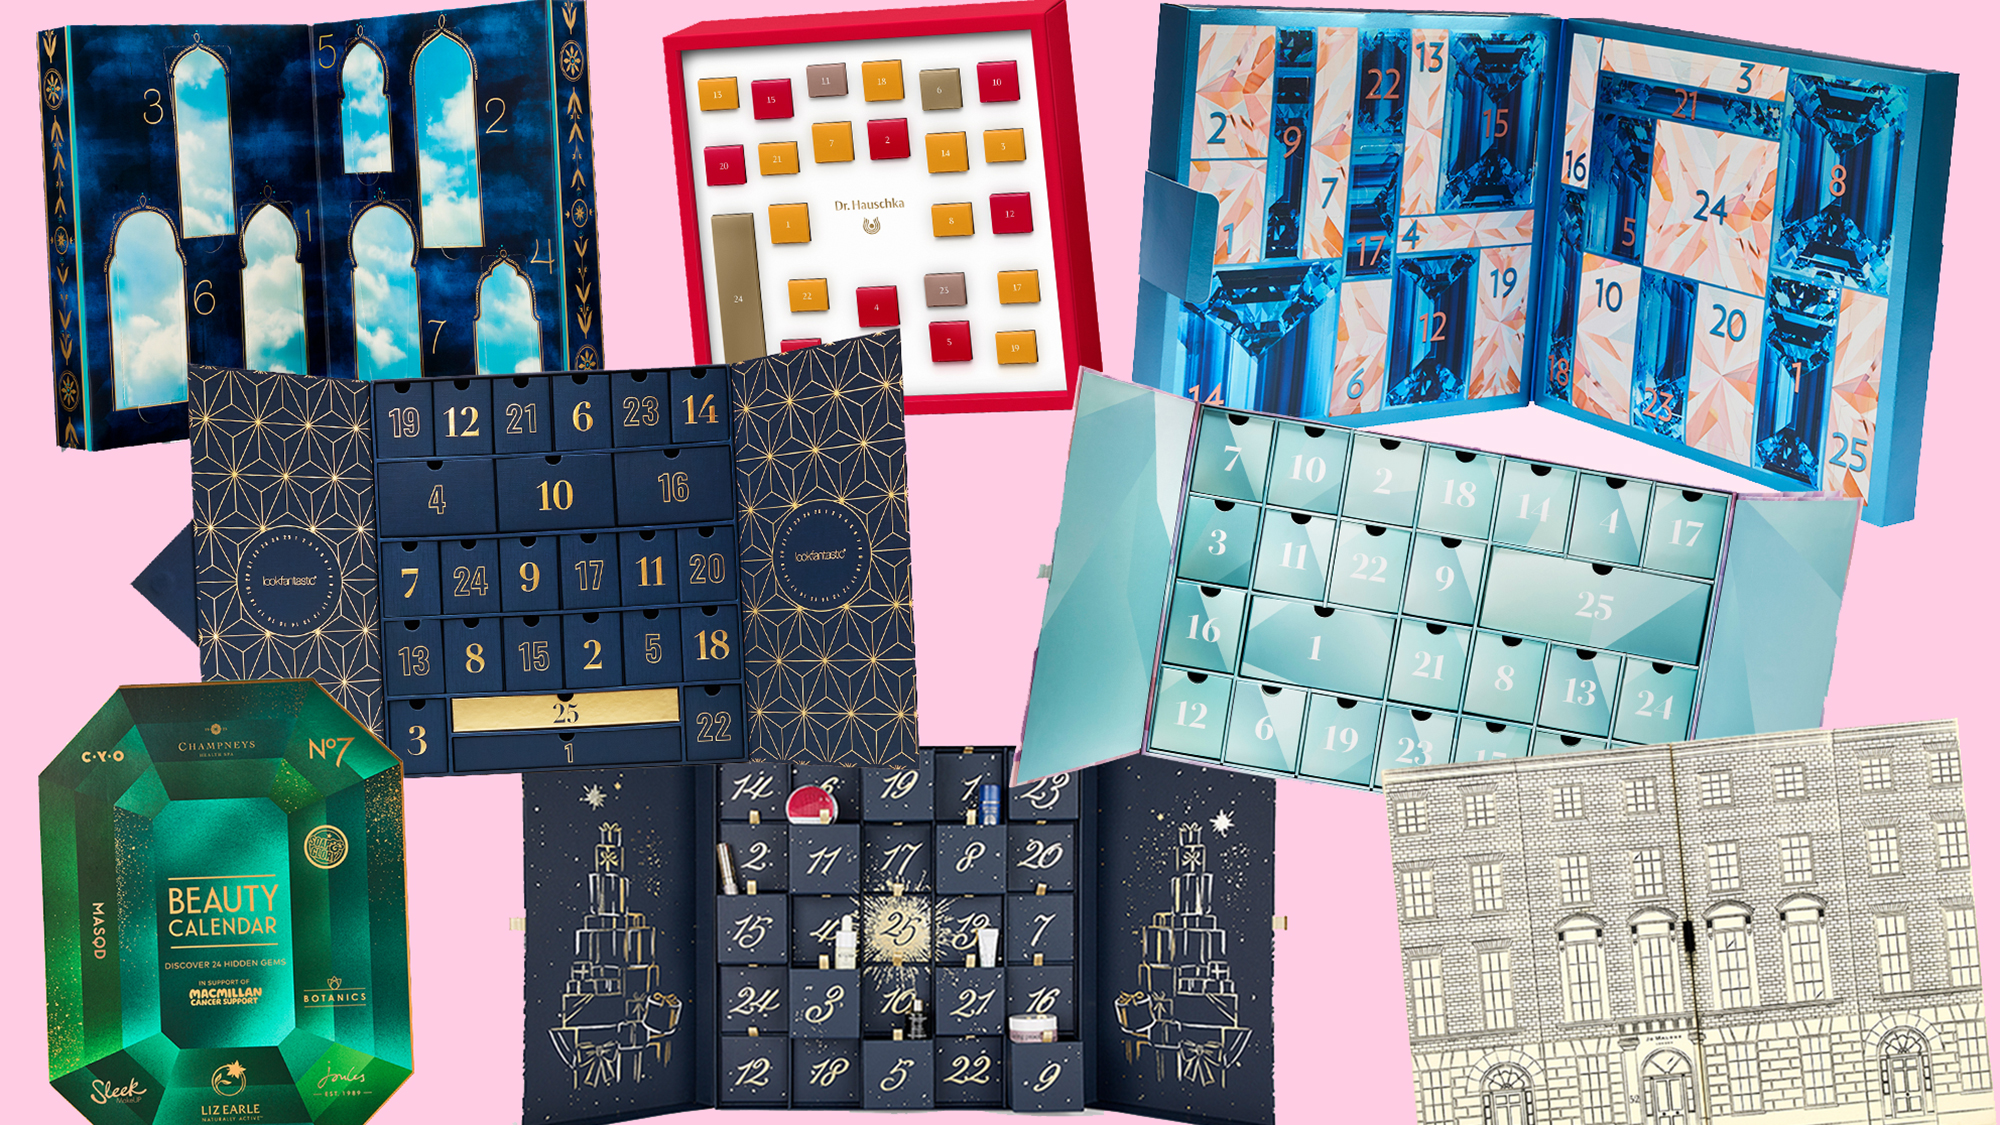 Beauty advent calendars we're *beyond* excited about this year